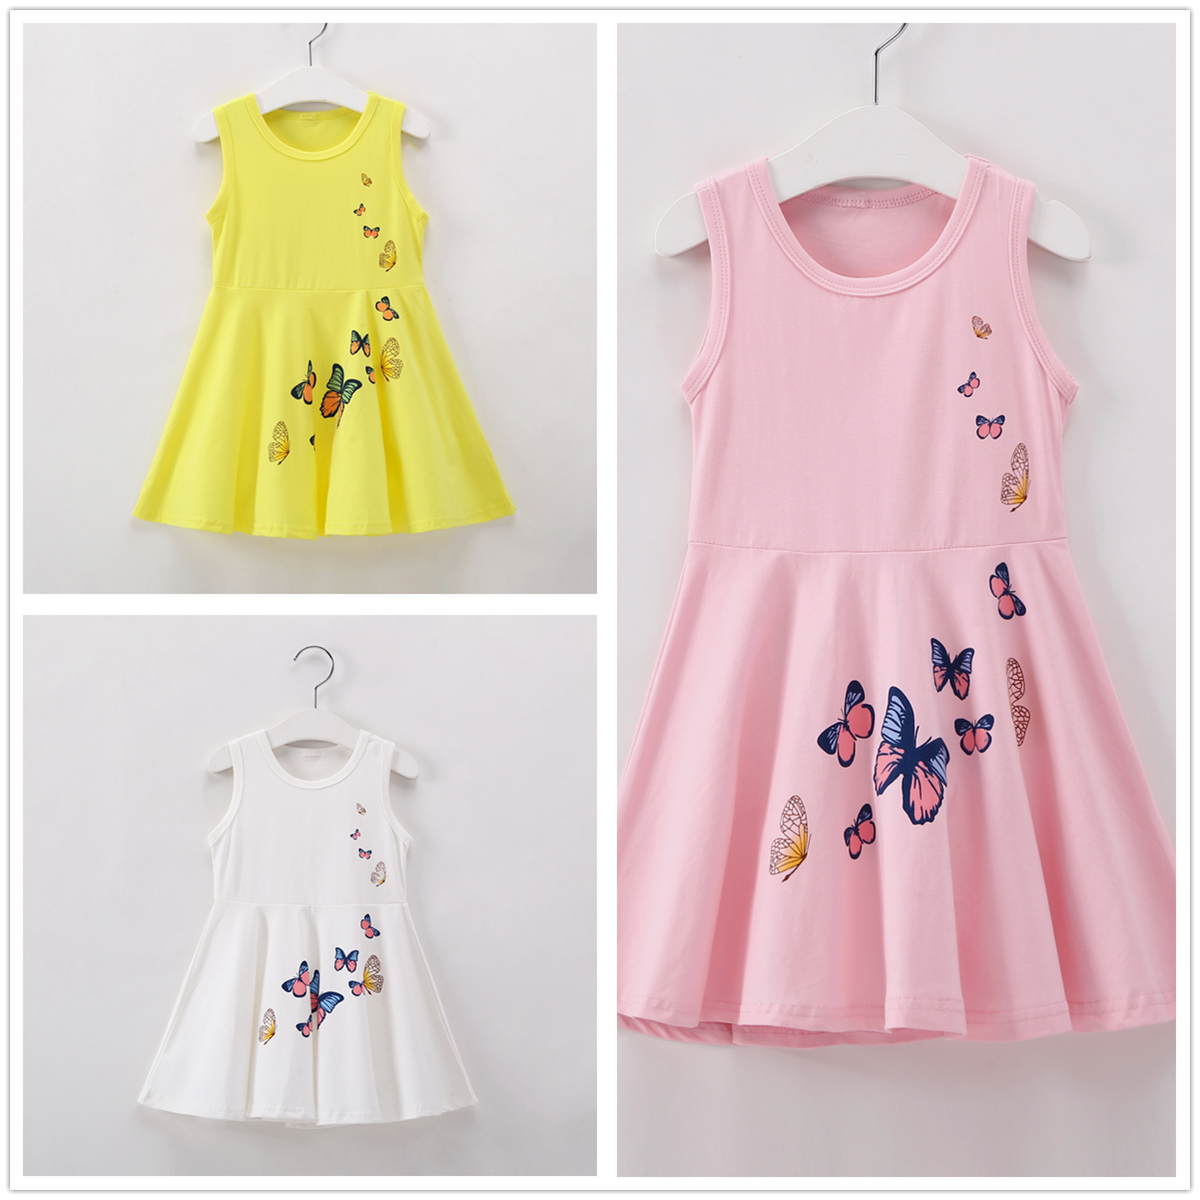 2-7Y Baby Girl Dress Summer Toddler Girls White Princess Dresses Pink Kids Cotton Clothing Children Birthday Clothes Butterfly summer baby girls dress ice cream print 100% cotton toddler girl clothing cartoon 2018 fashion kids girl clothes infant dresses